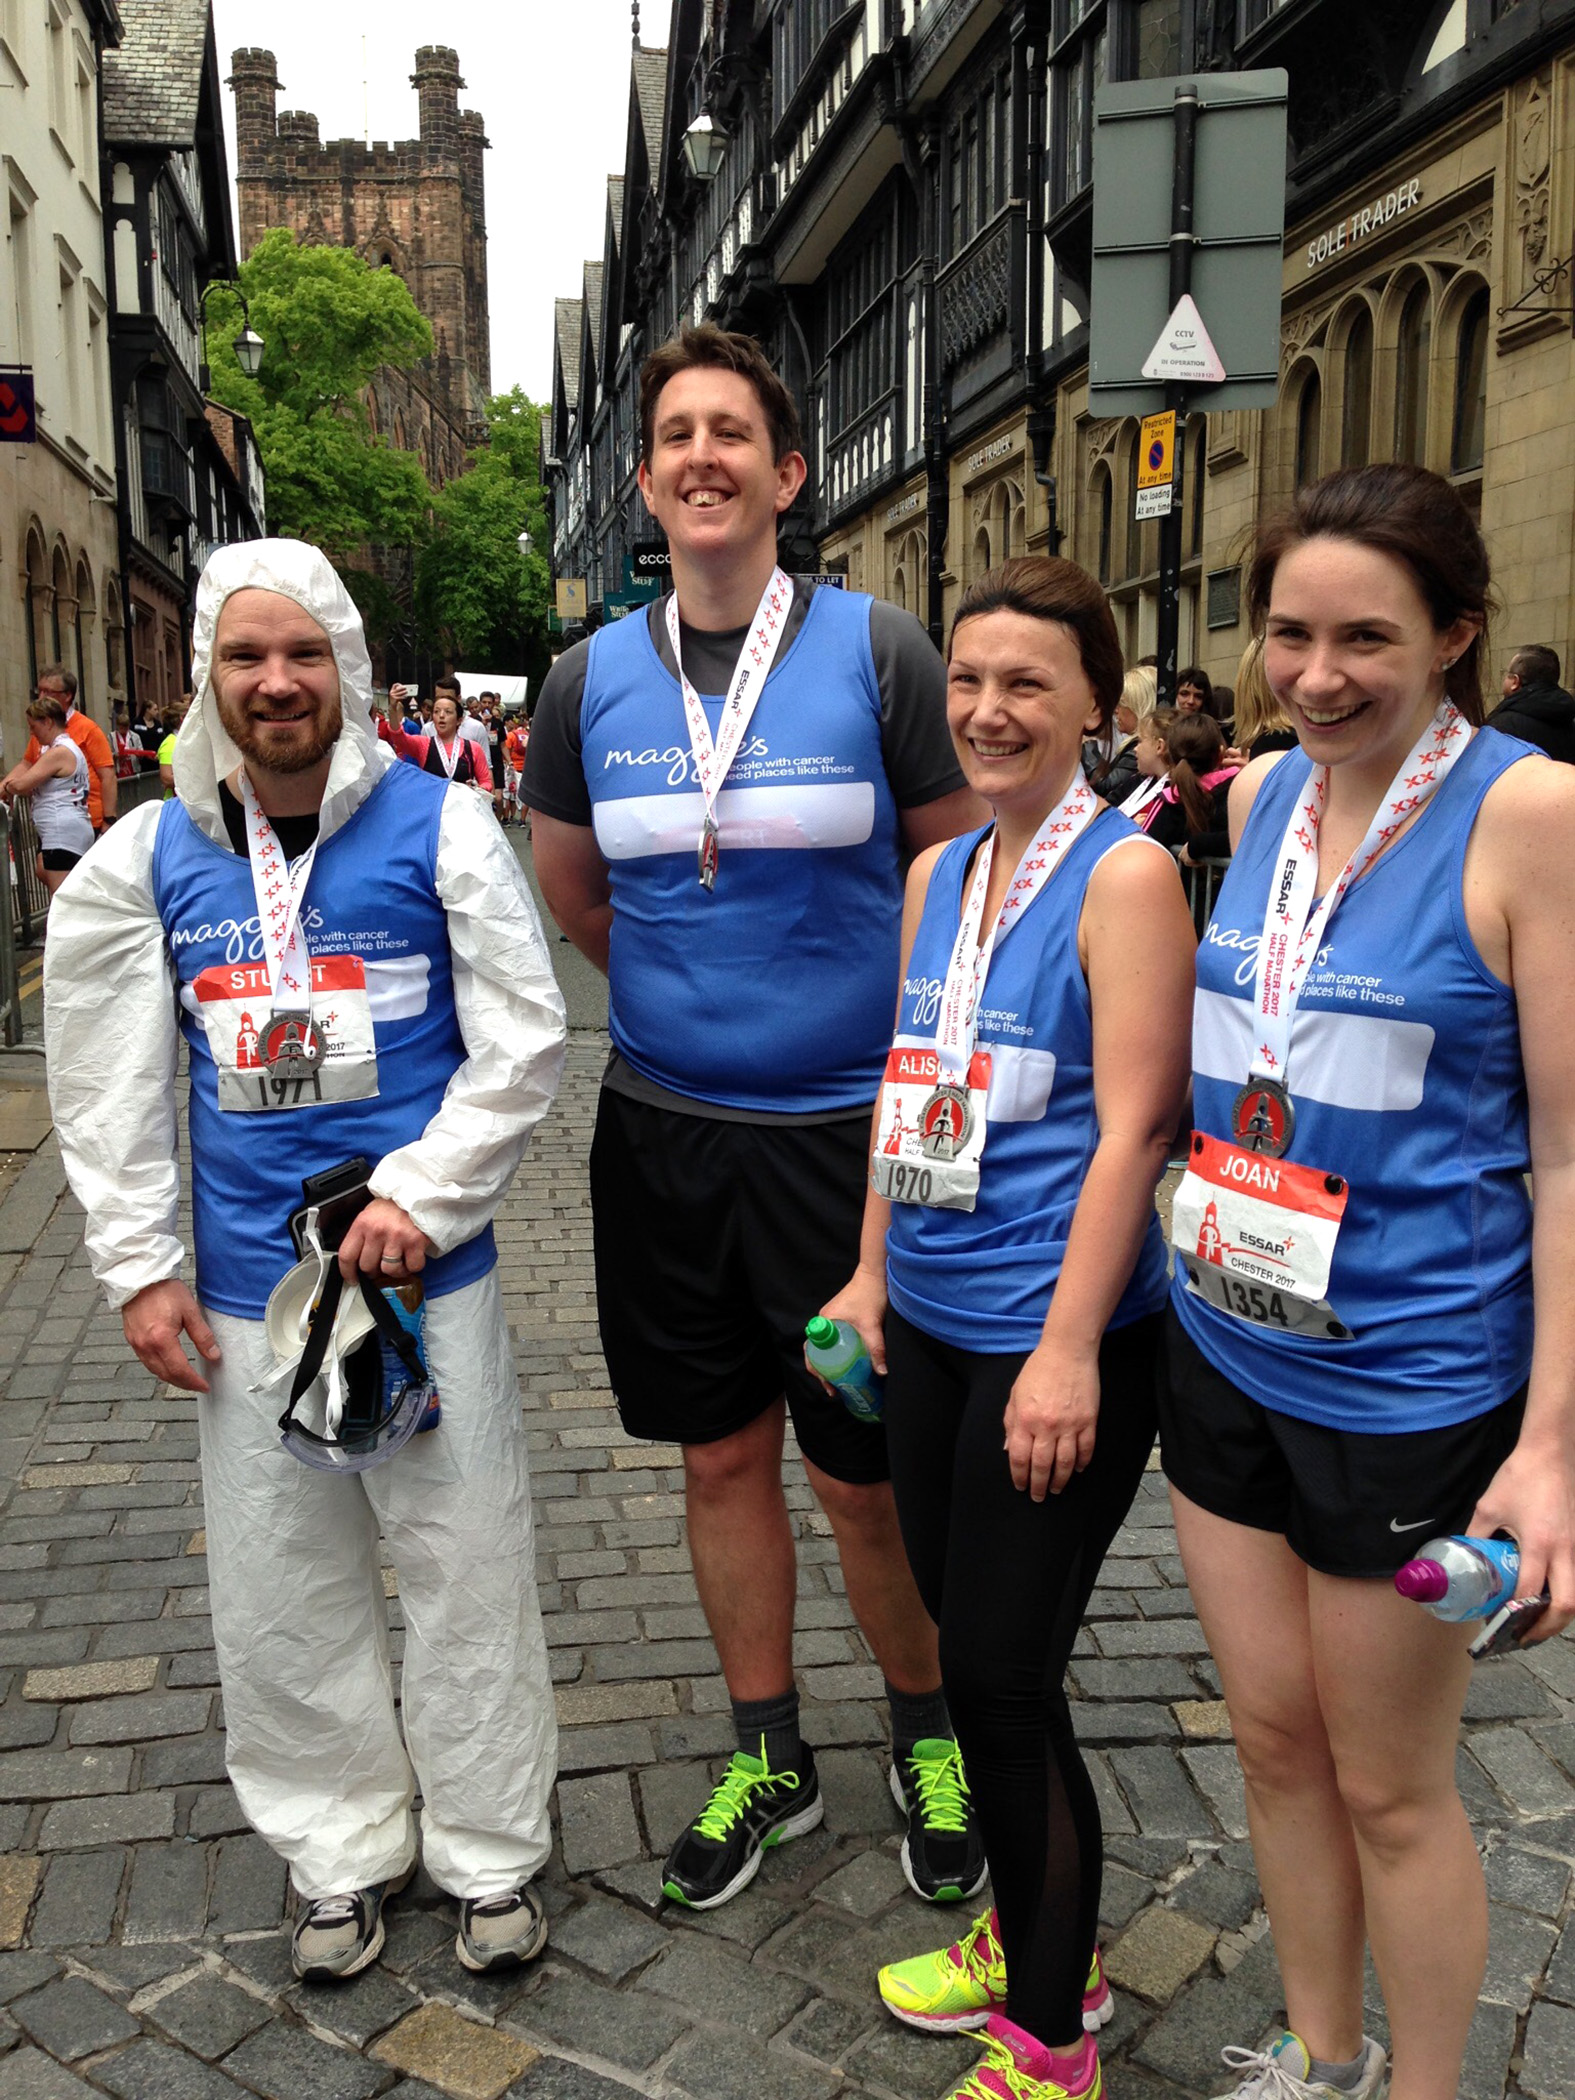 Joan Kennedy, Robert Moore, Stuart and Alison Hughes ran the Chester Half Marathon for Maggies